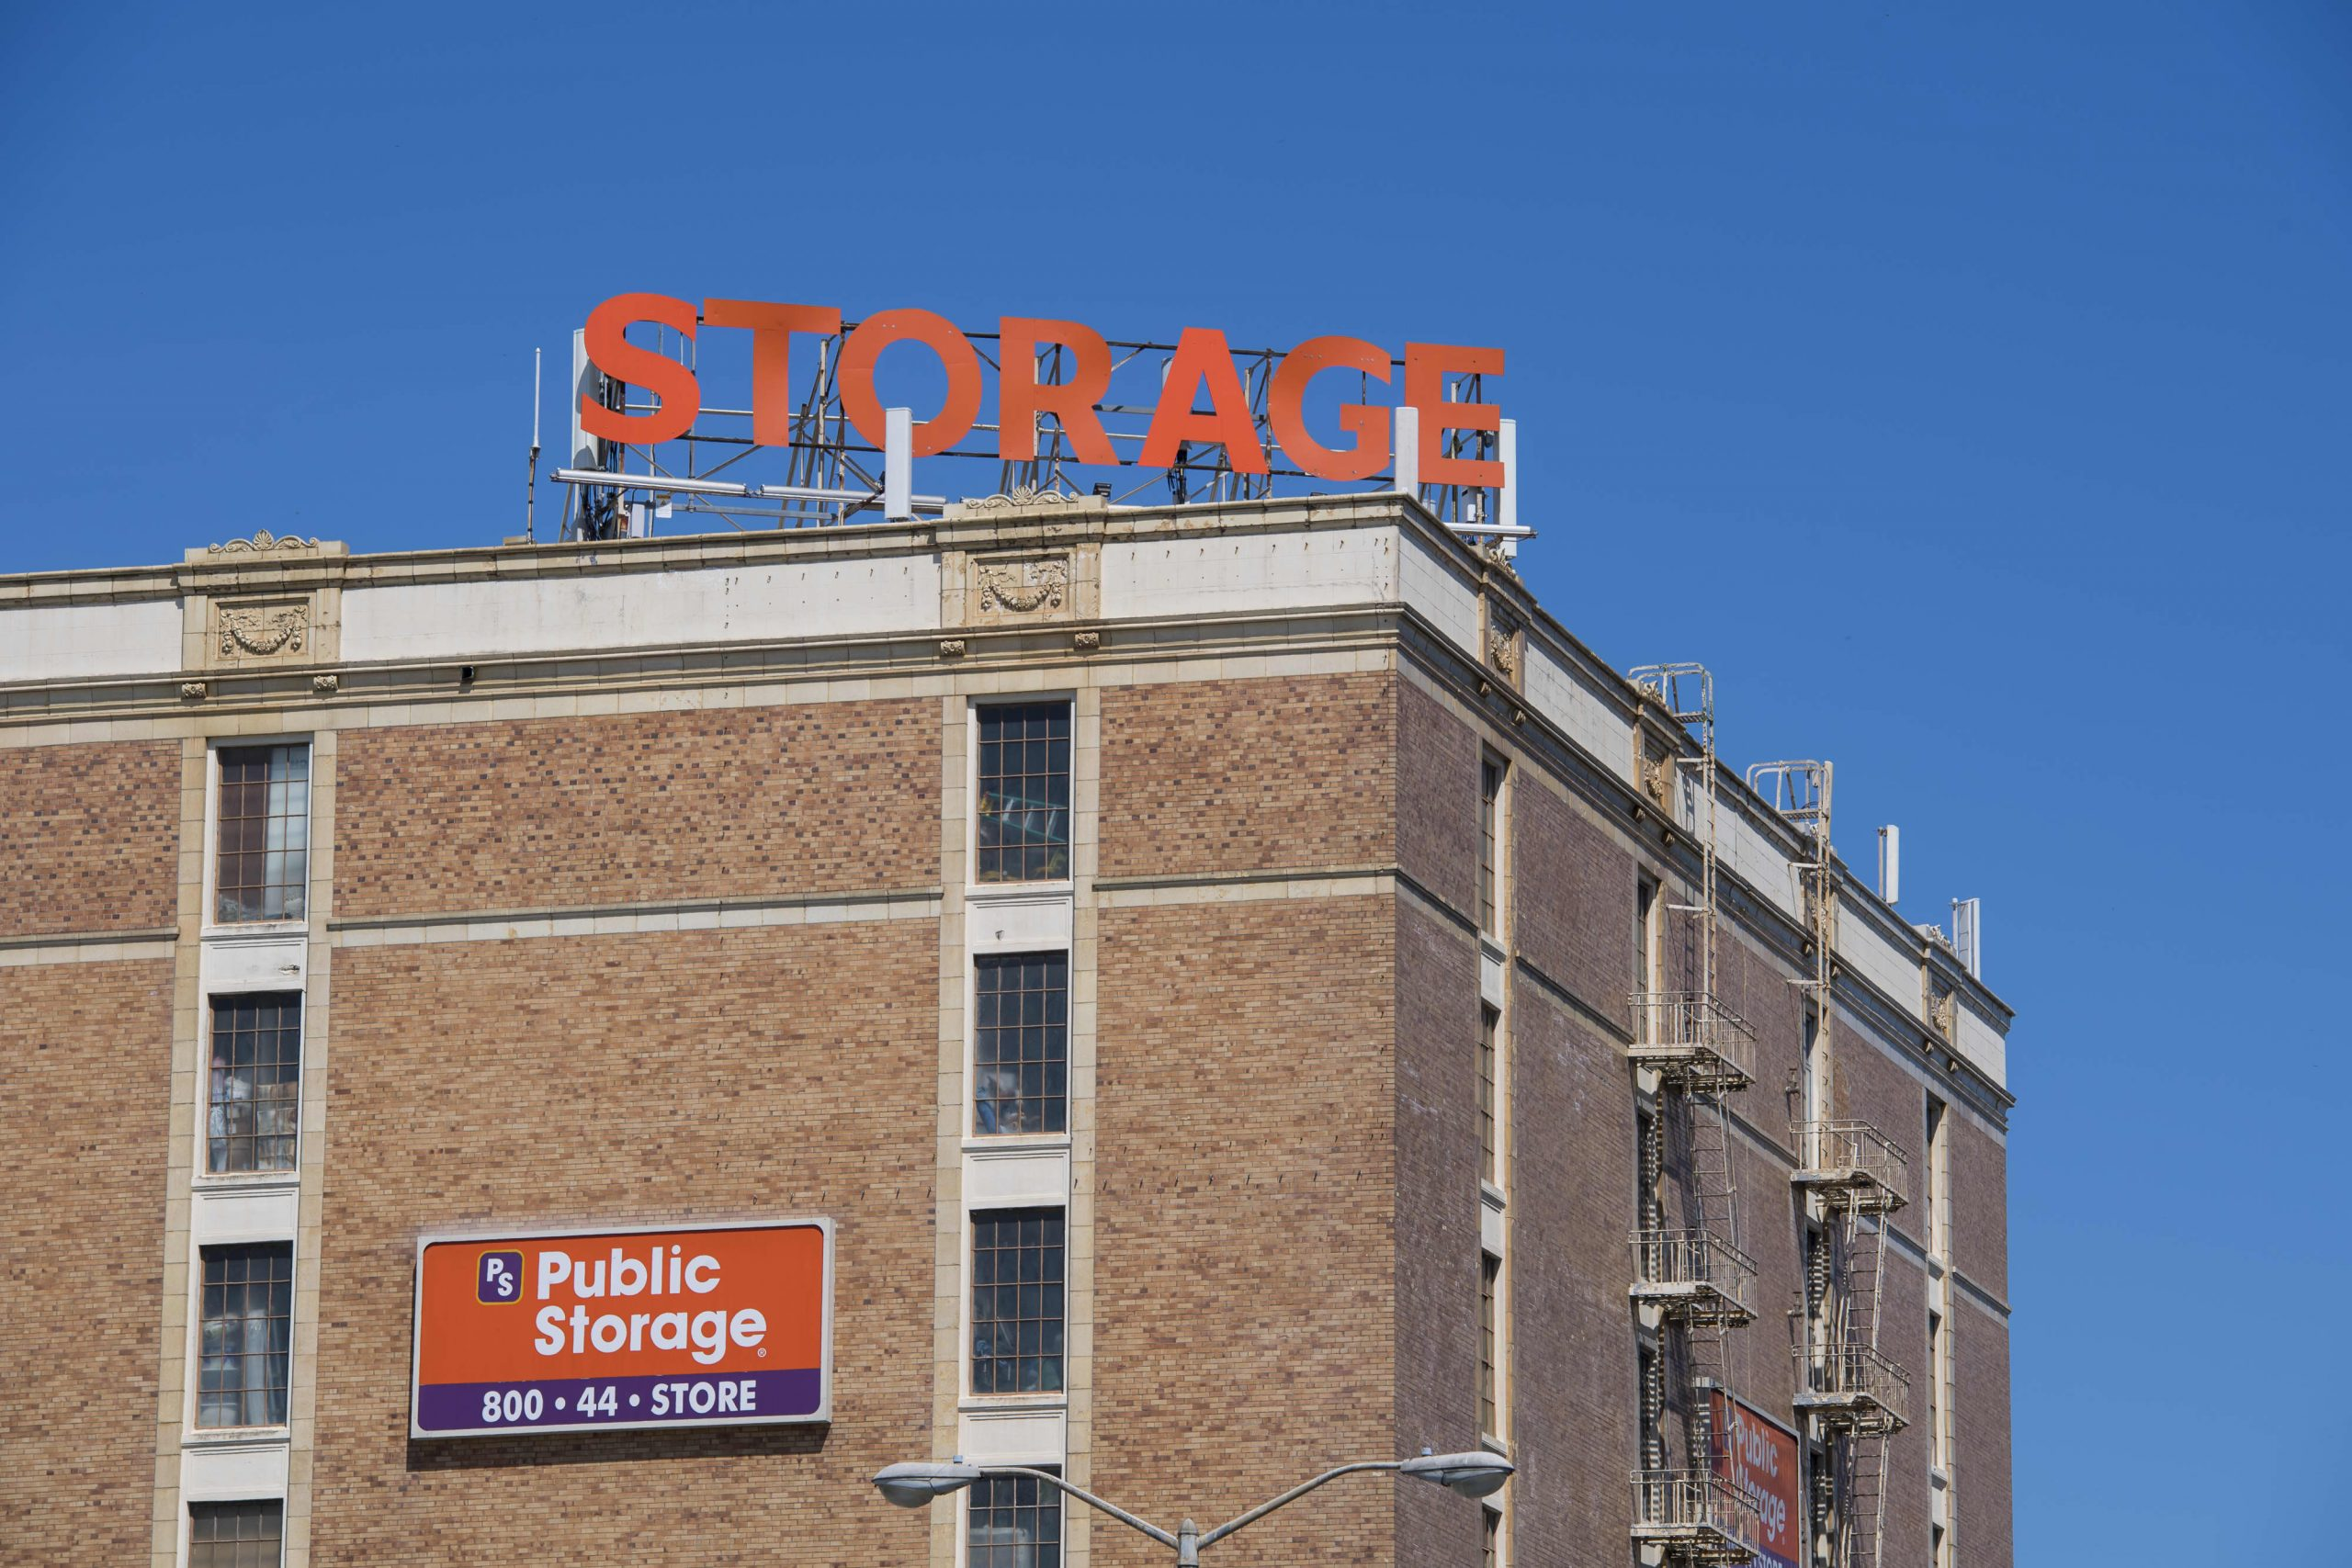 How Public Storage and Additional House Storage make billions